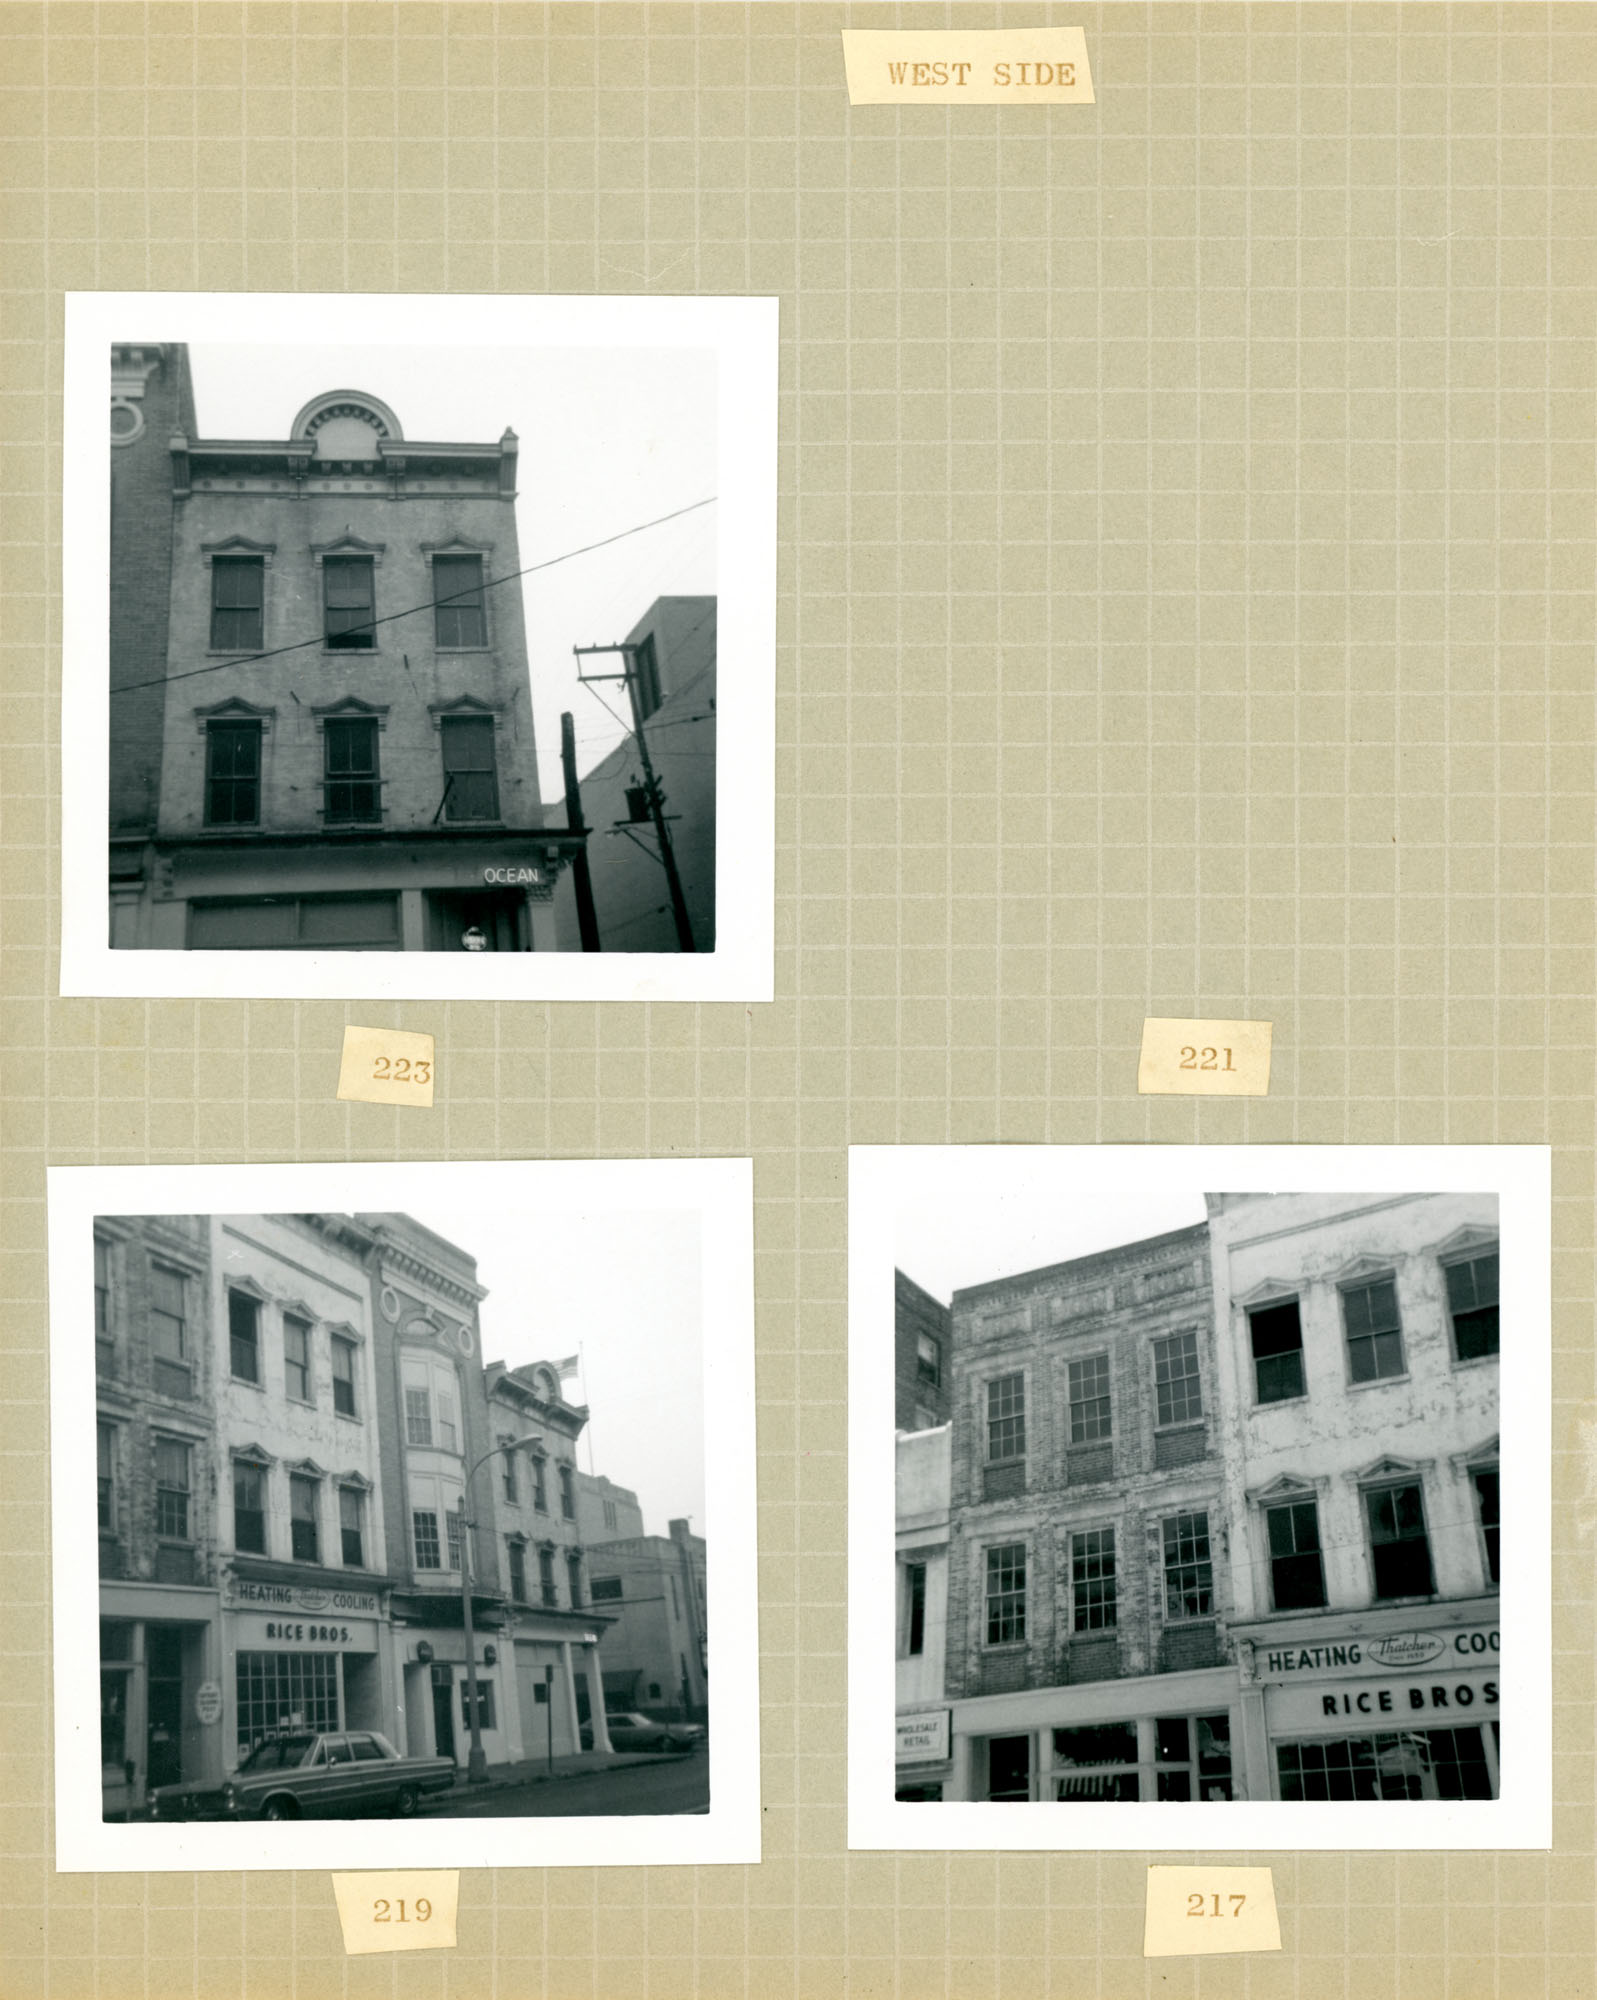 King Street Survey Photo Album, Page 3 (back): 217-223 King Street